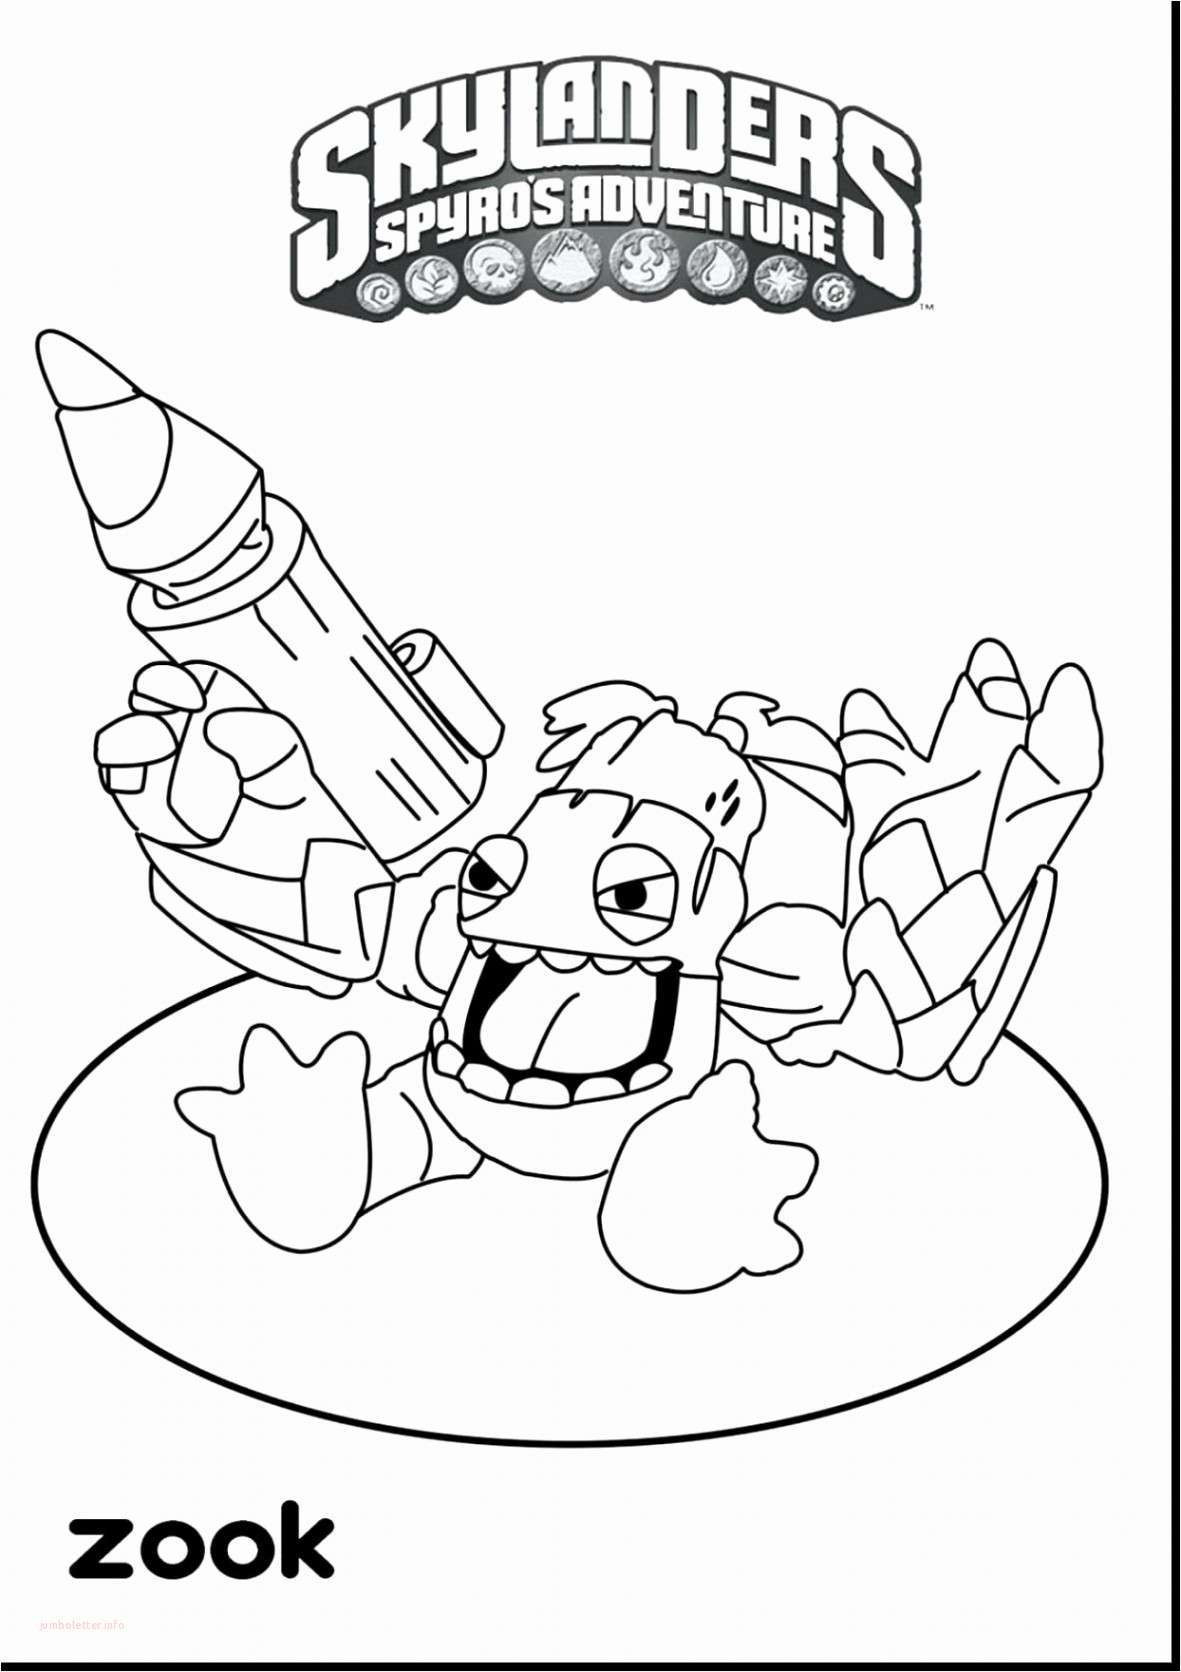 sunday school coloring pages easter Download-Free Easter Coloring Pages For Sunday School New 38 Princess Cartoons Free Coloring Sheets 15-c